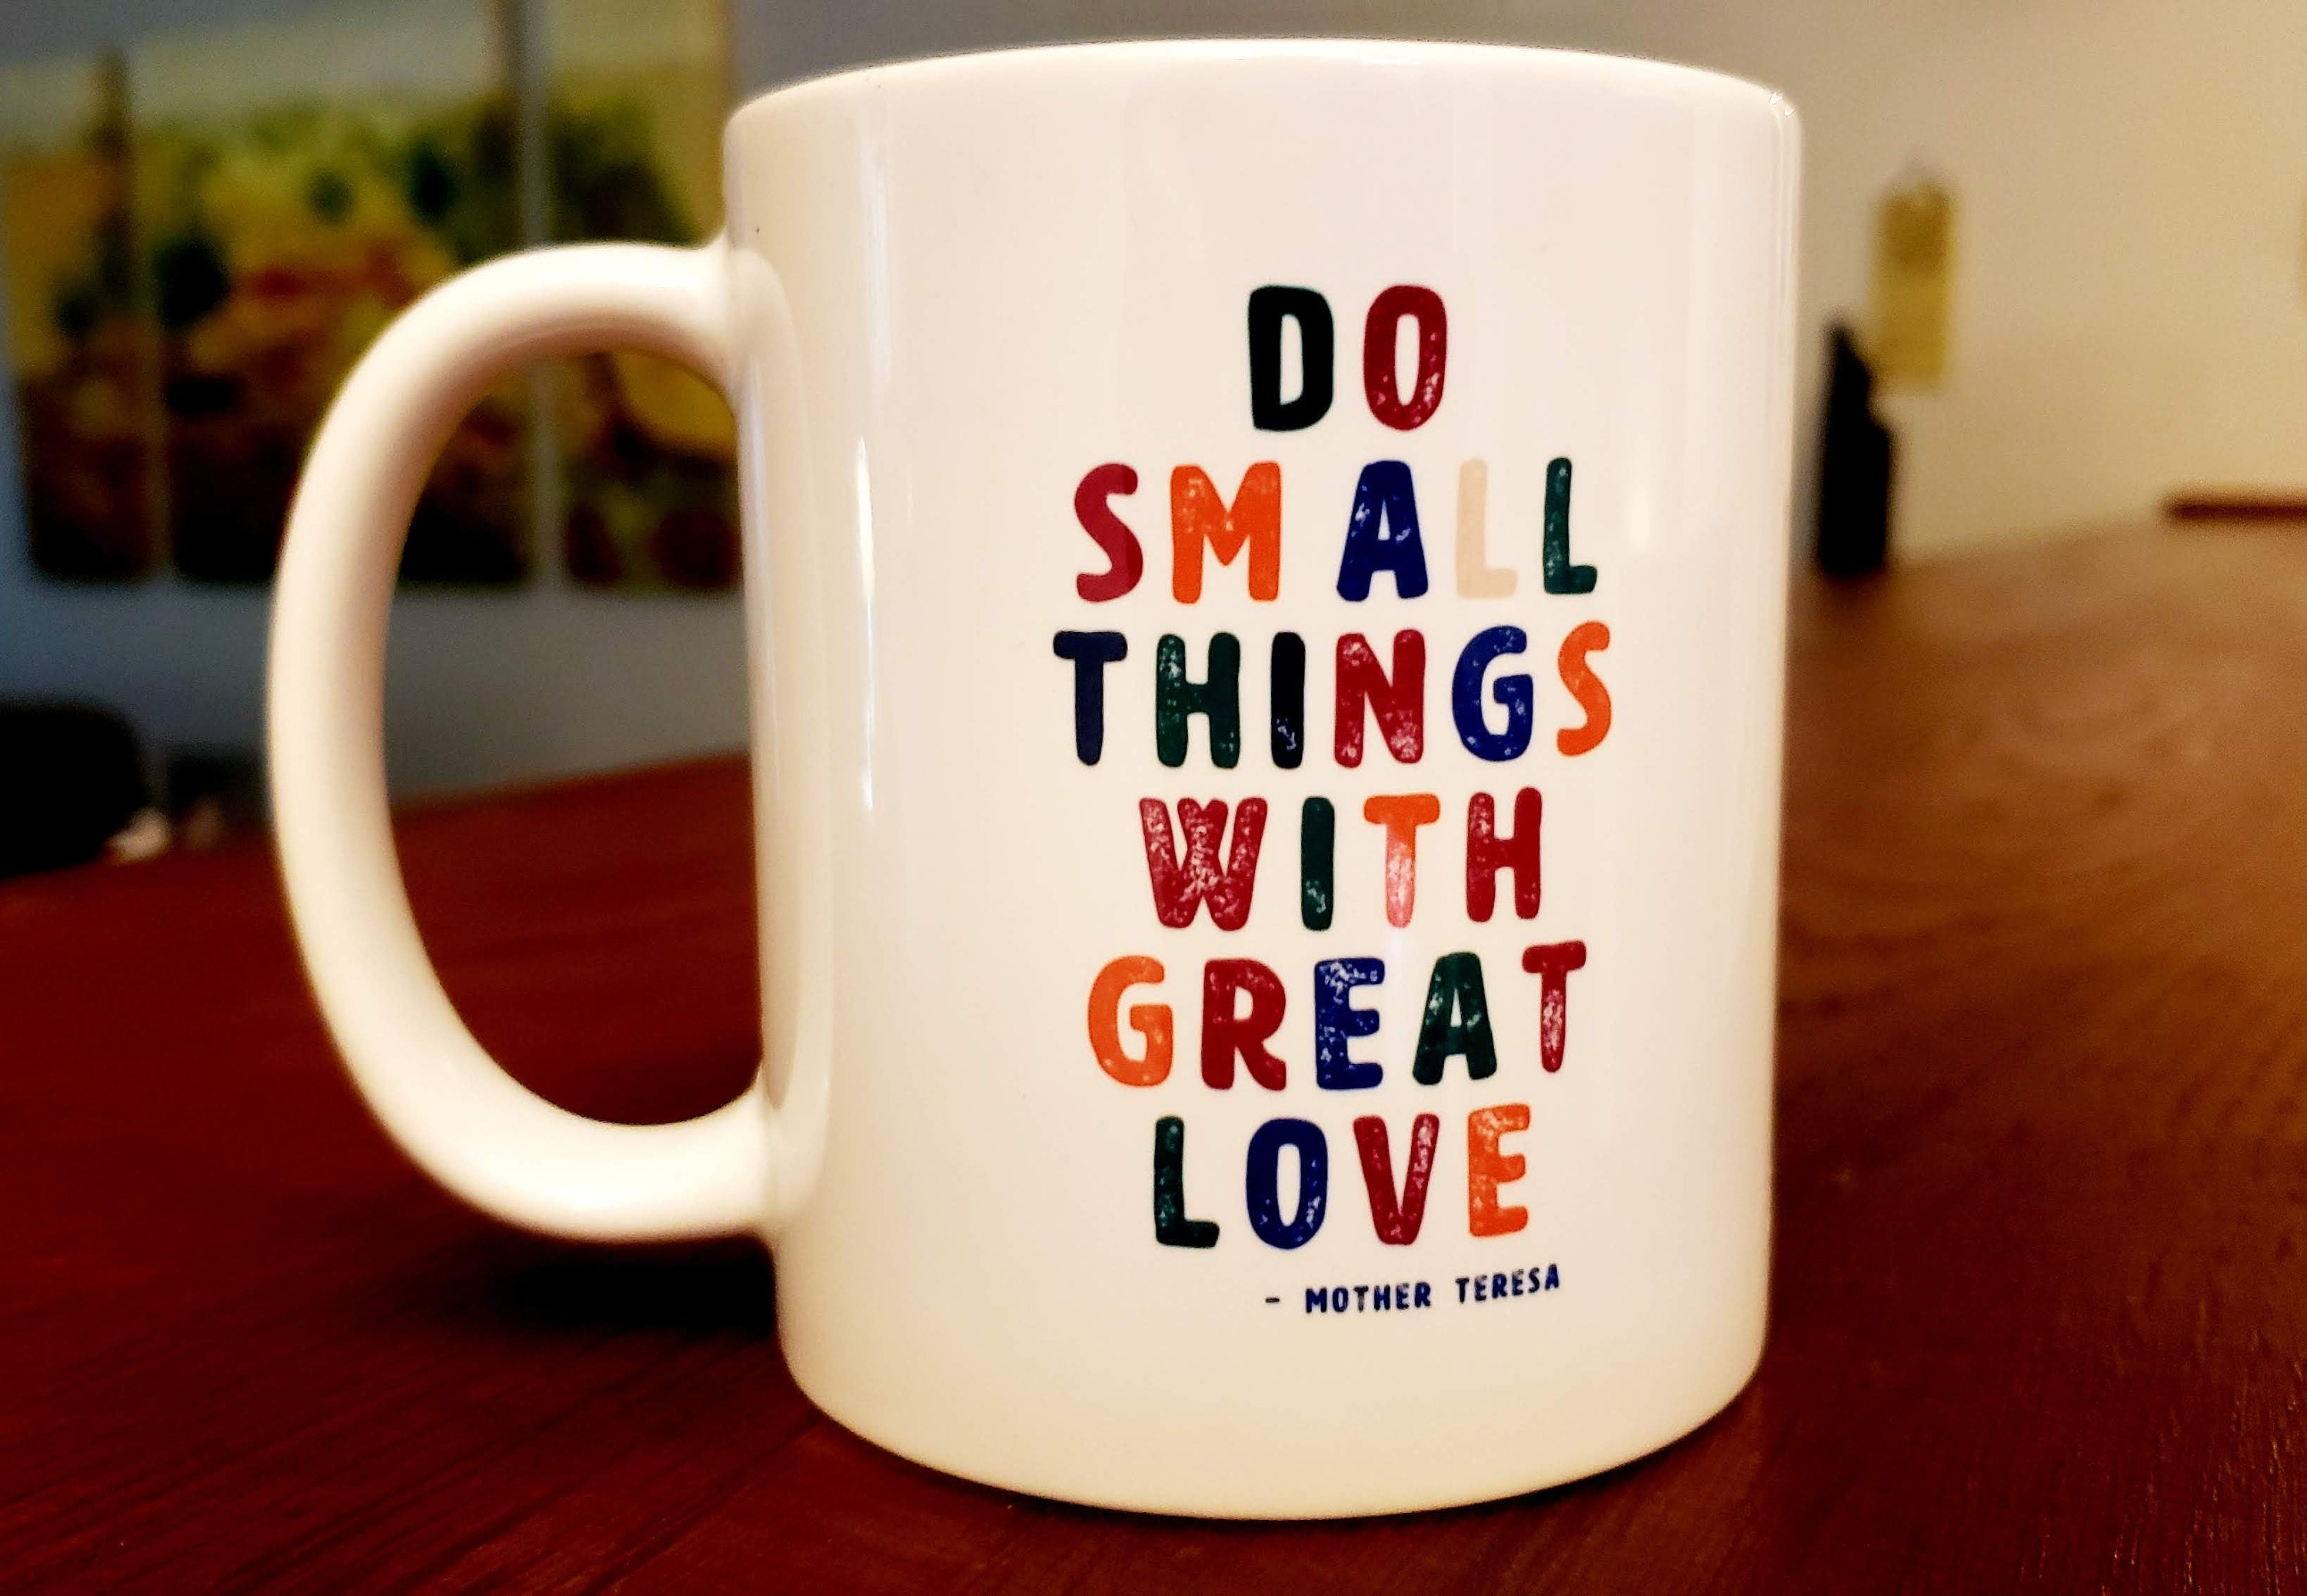 Do Small Things With Great Love - Mother Teresa Mug | Mother Teresa | Catholic | Catholic Mug | Graduation Gift| Teacher Gift